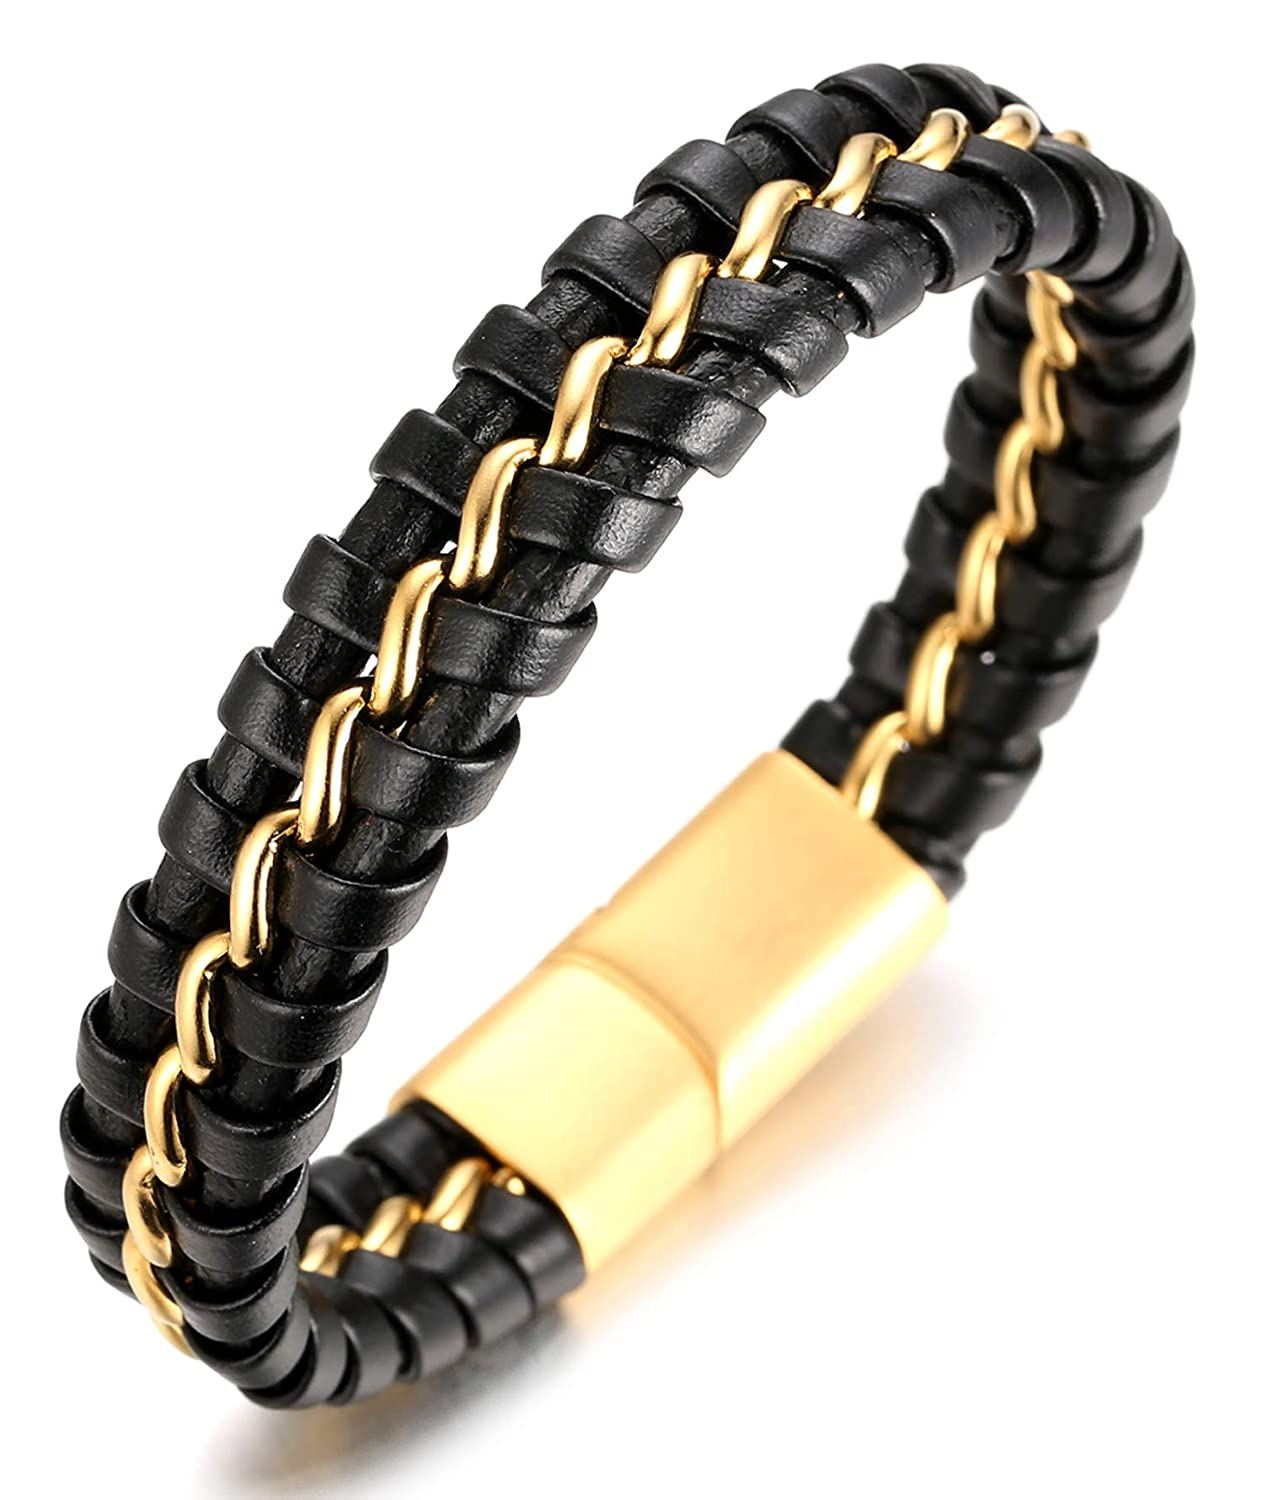 Halukakah ● Solo Matt ● Men's Genuine Leather Handmade Bracelet Titanium Chain Golden/Black/Silver with Matt Magnetic Clasp 8.5'(21.5cm) with Free Giftbox